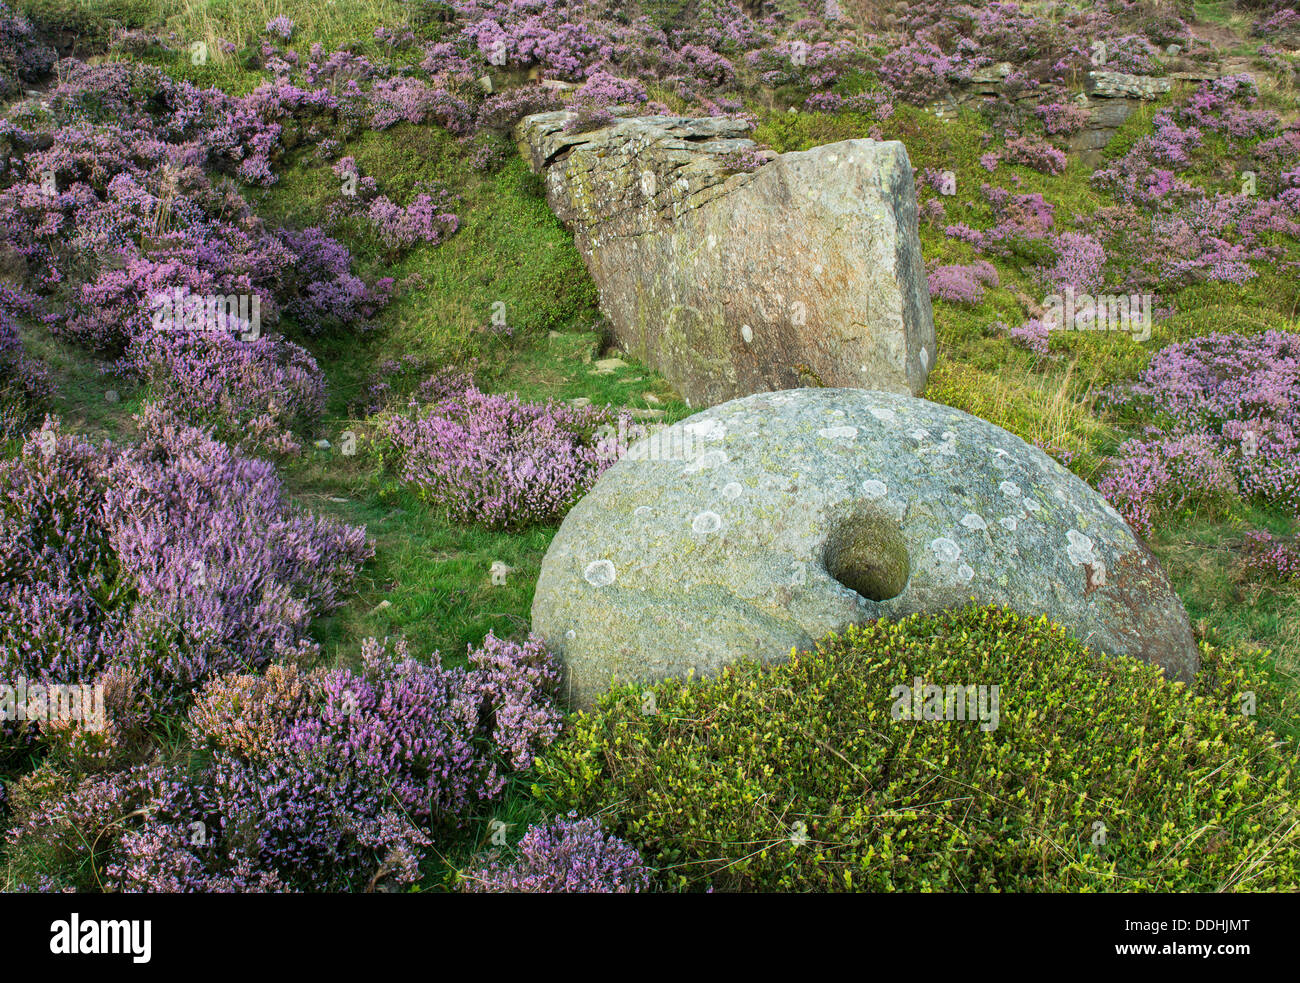 Millstone surrounded by purple heather in bloom on Bamford Edge, Peak district, Derbyshire - Stock Image